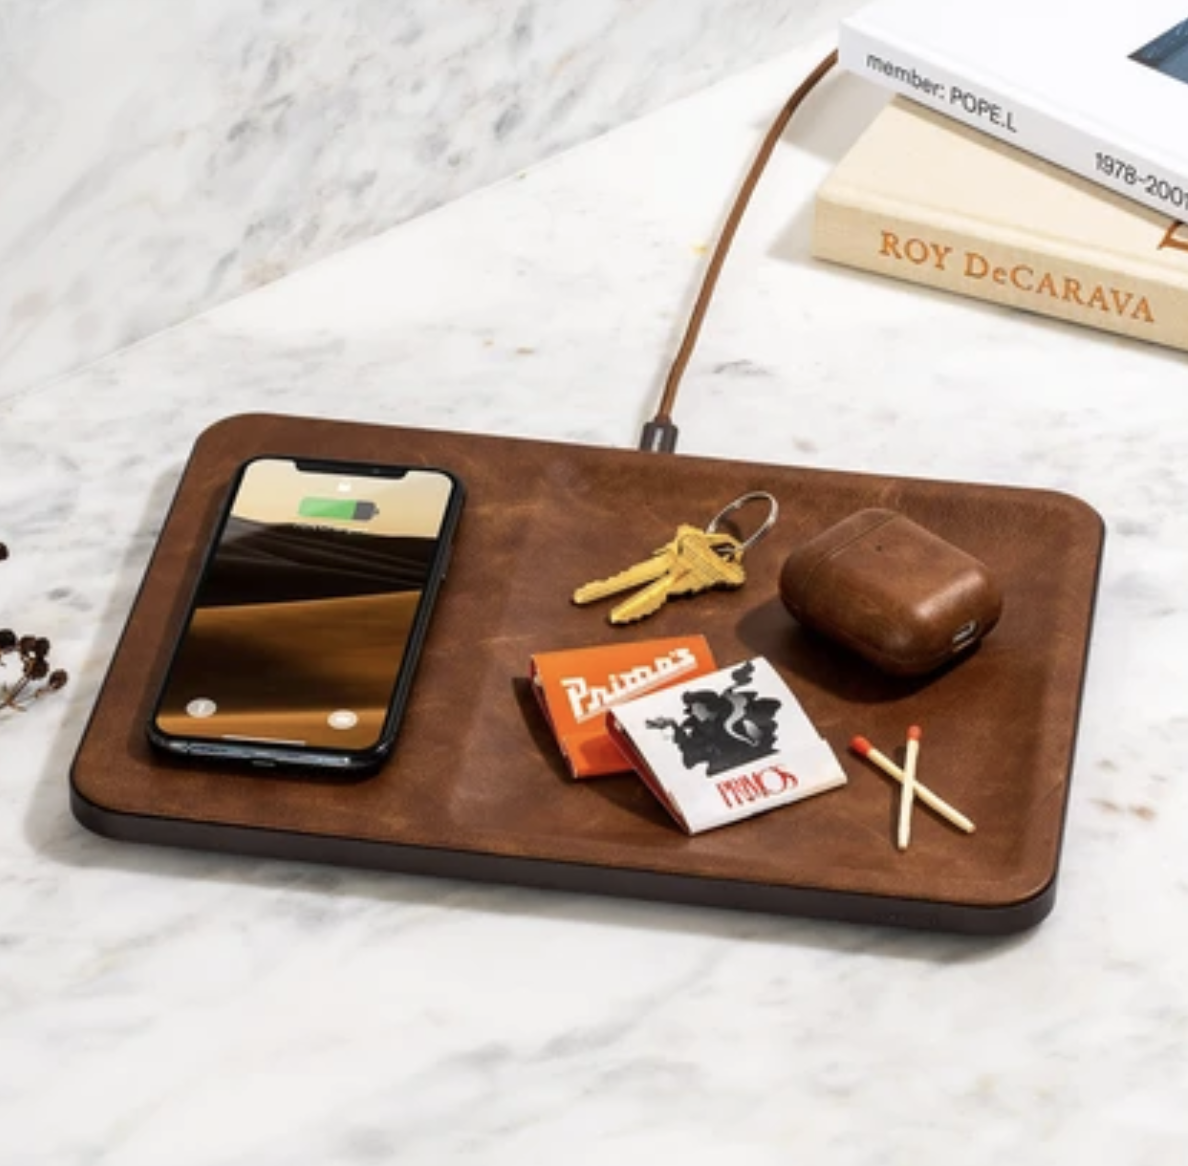 Rectangular wireless charging pad that looks like brown leather with a spot to charge devices and space to hold small items